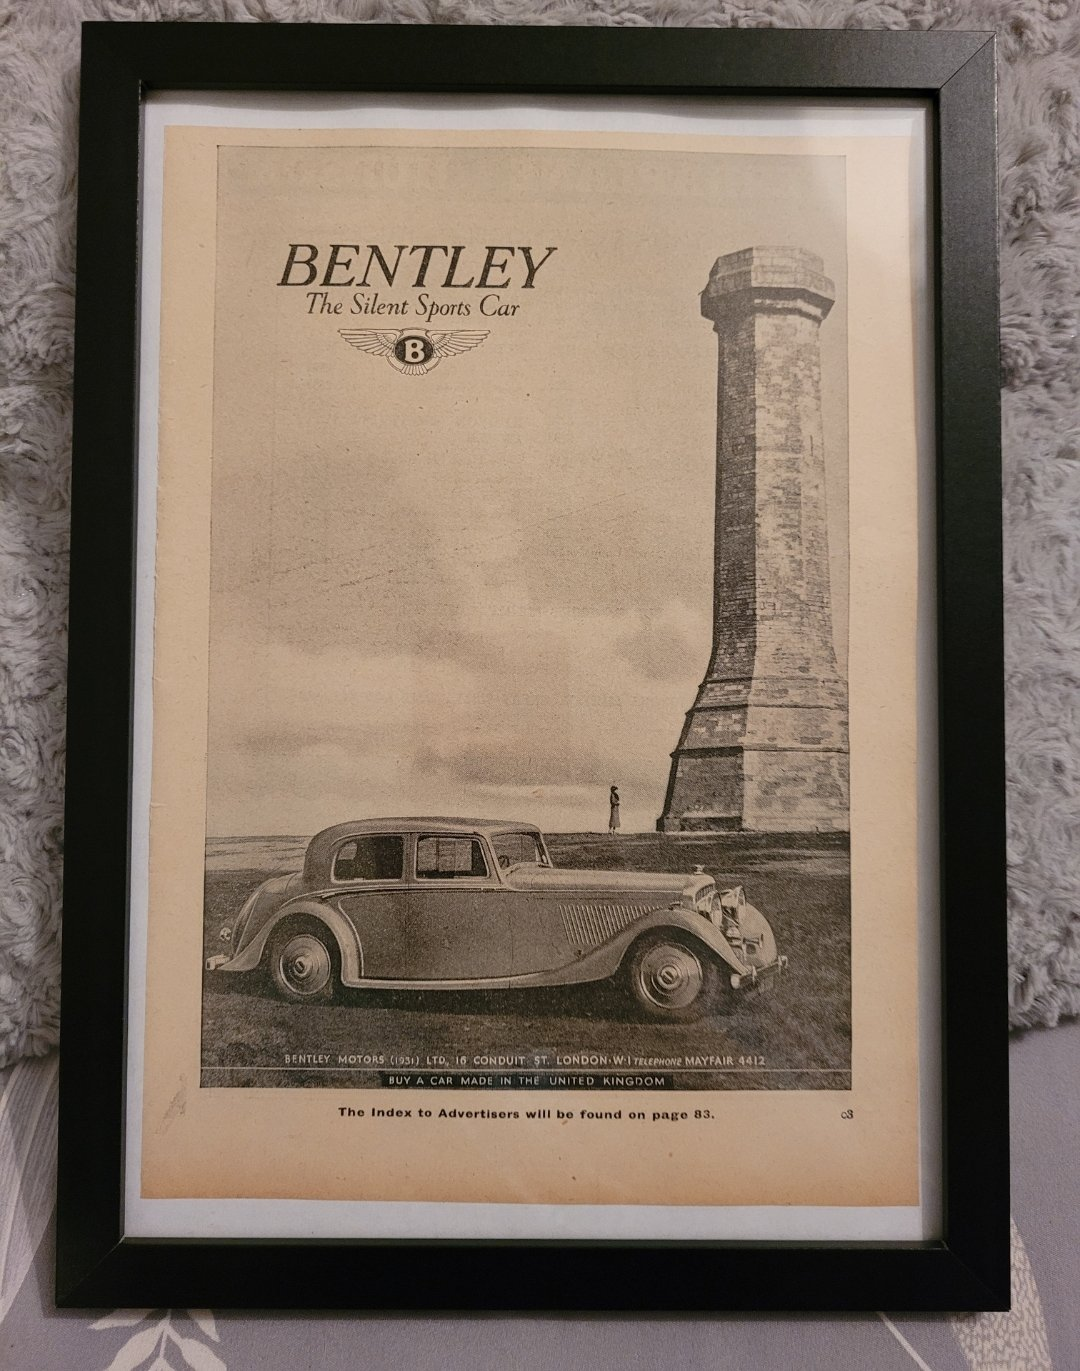 Original 1936 Bentley 4 1/4 Ltr Framed Advert